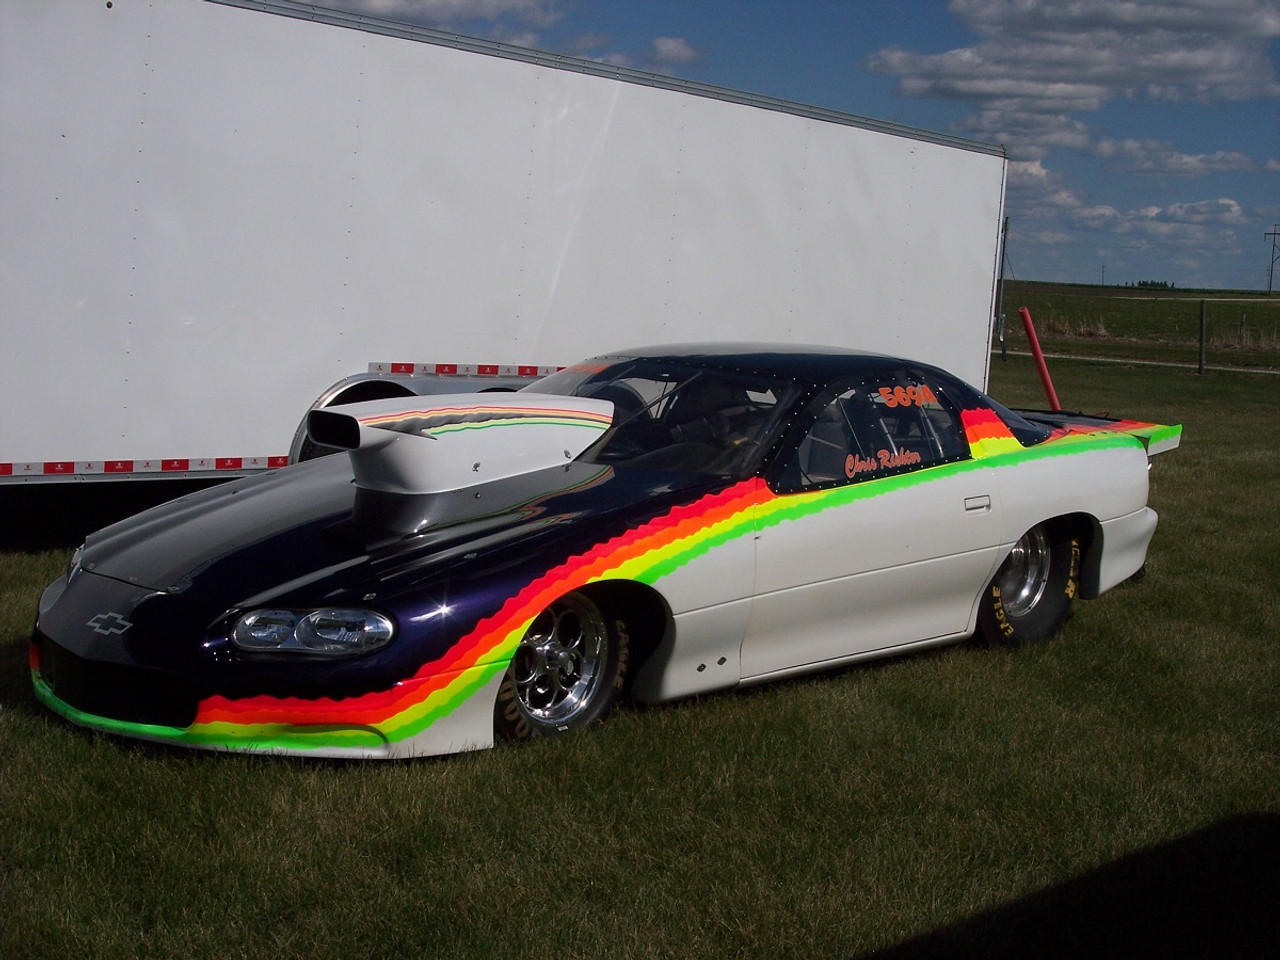 Chris Richter's Beautiful 2002 Camaro SS Steve Schmidt Powered uses the BTE Racing Top Sportsman 1.80 Powerglide BTE074473